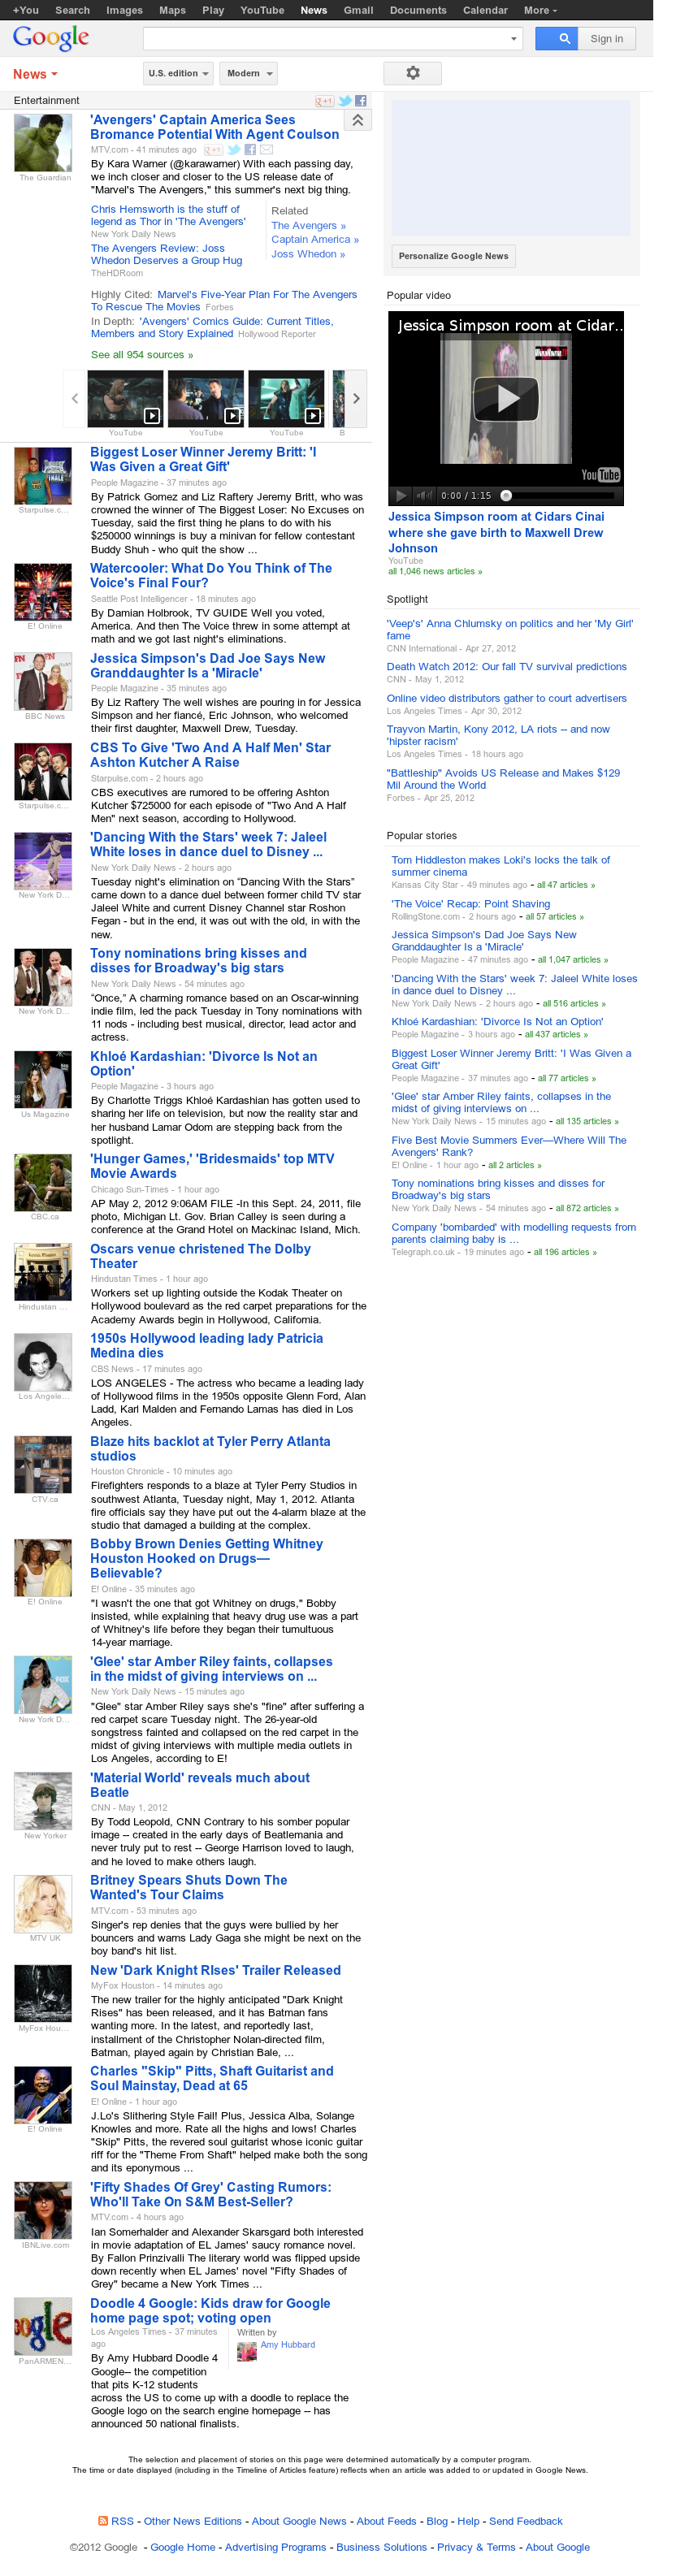 Google News: Entertainment at Wednesday May 2, 2012, 3:06 p.m. UTC